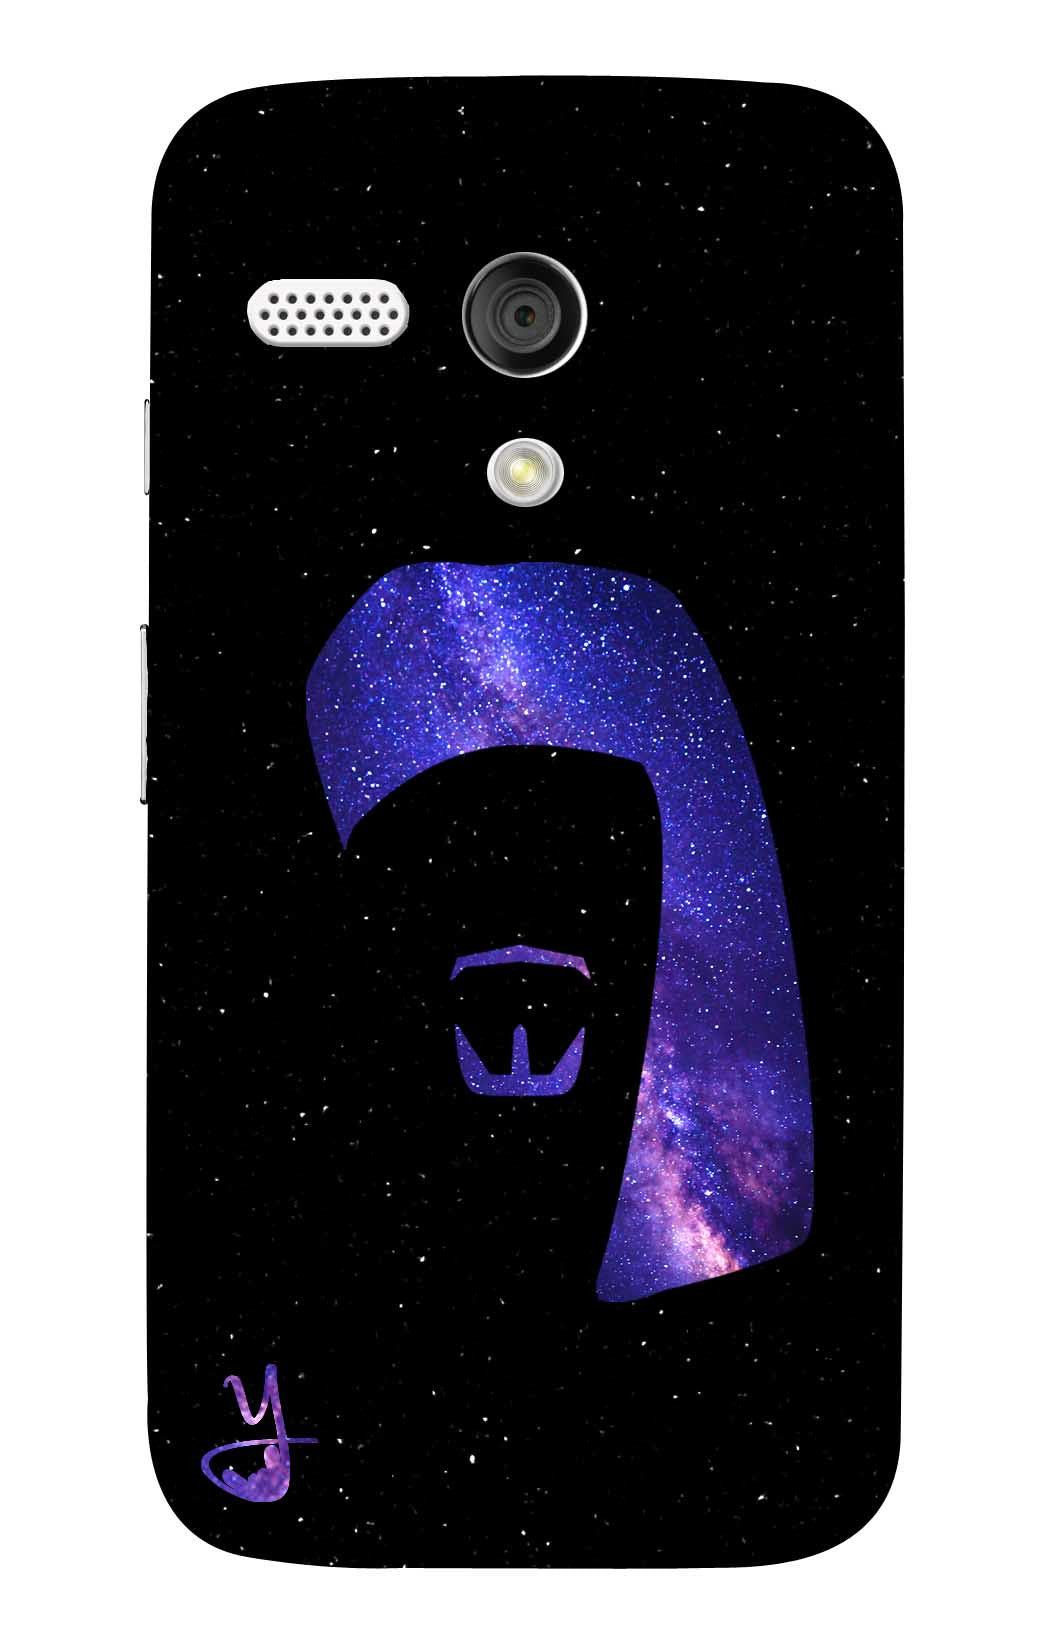 Mr. Hola Galaxy Edition  for Moto G